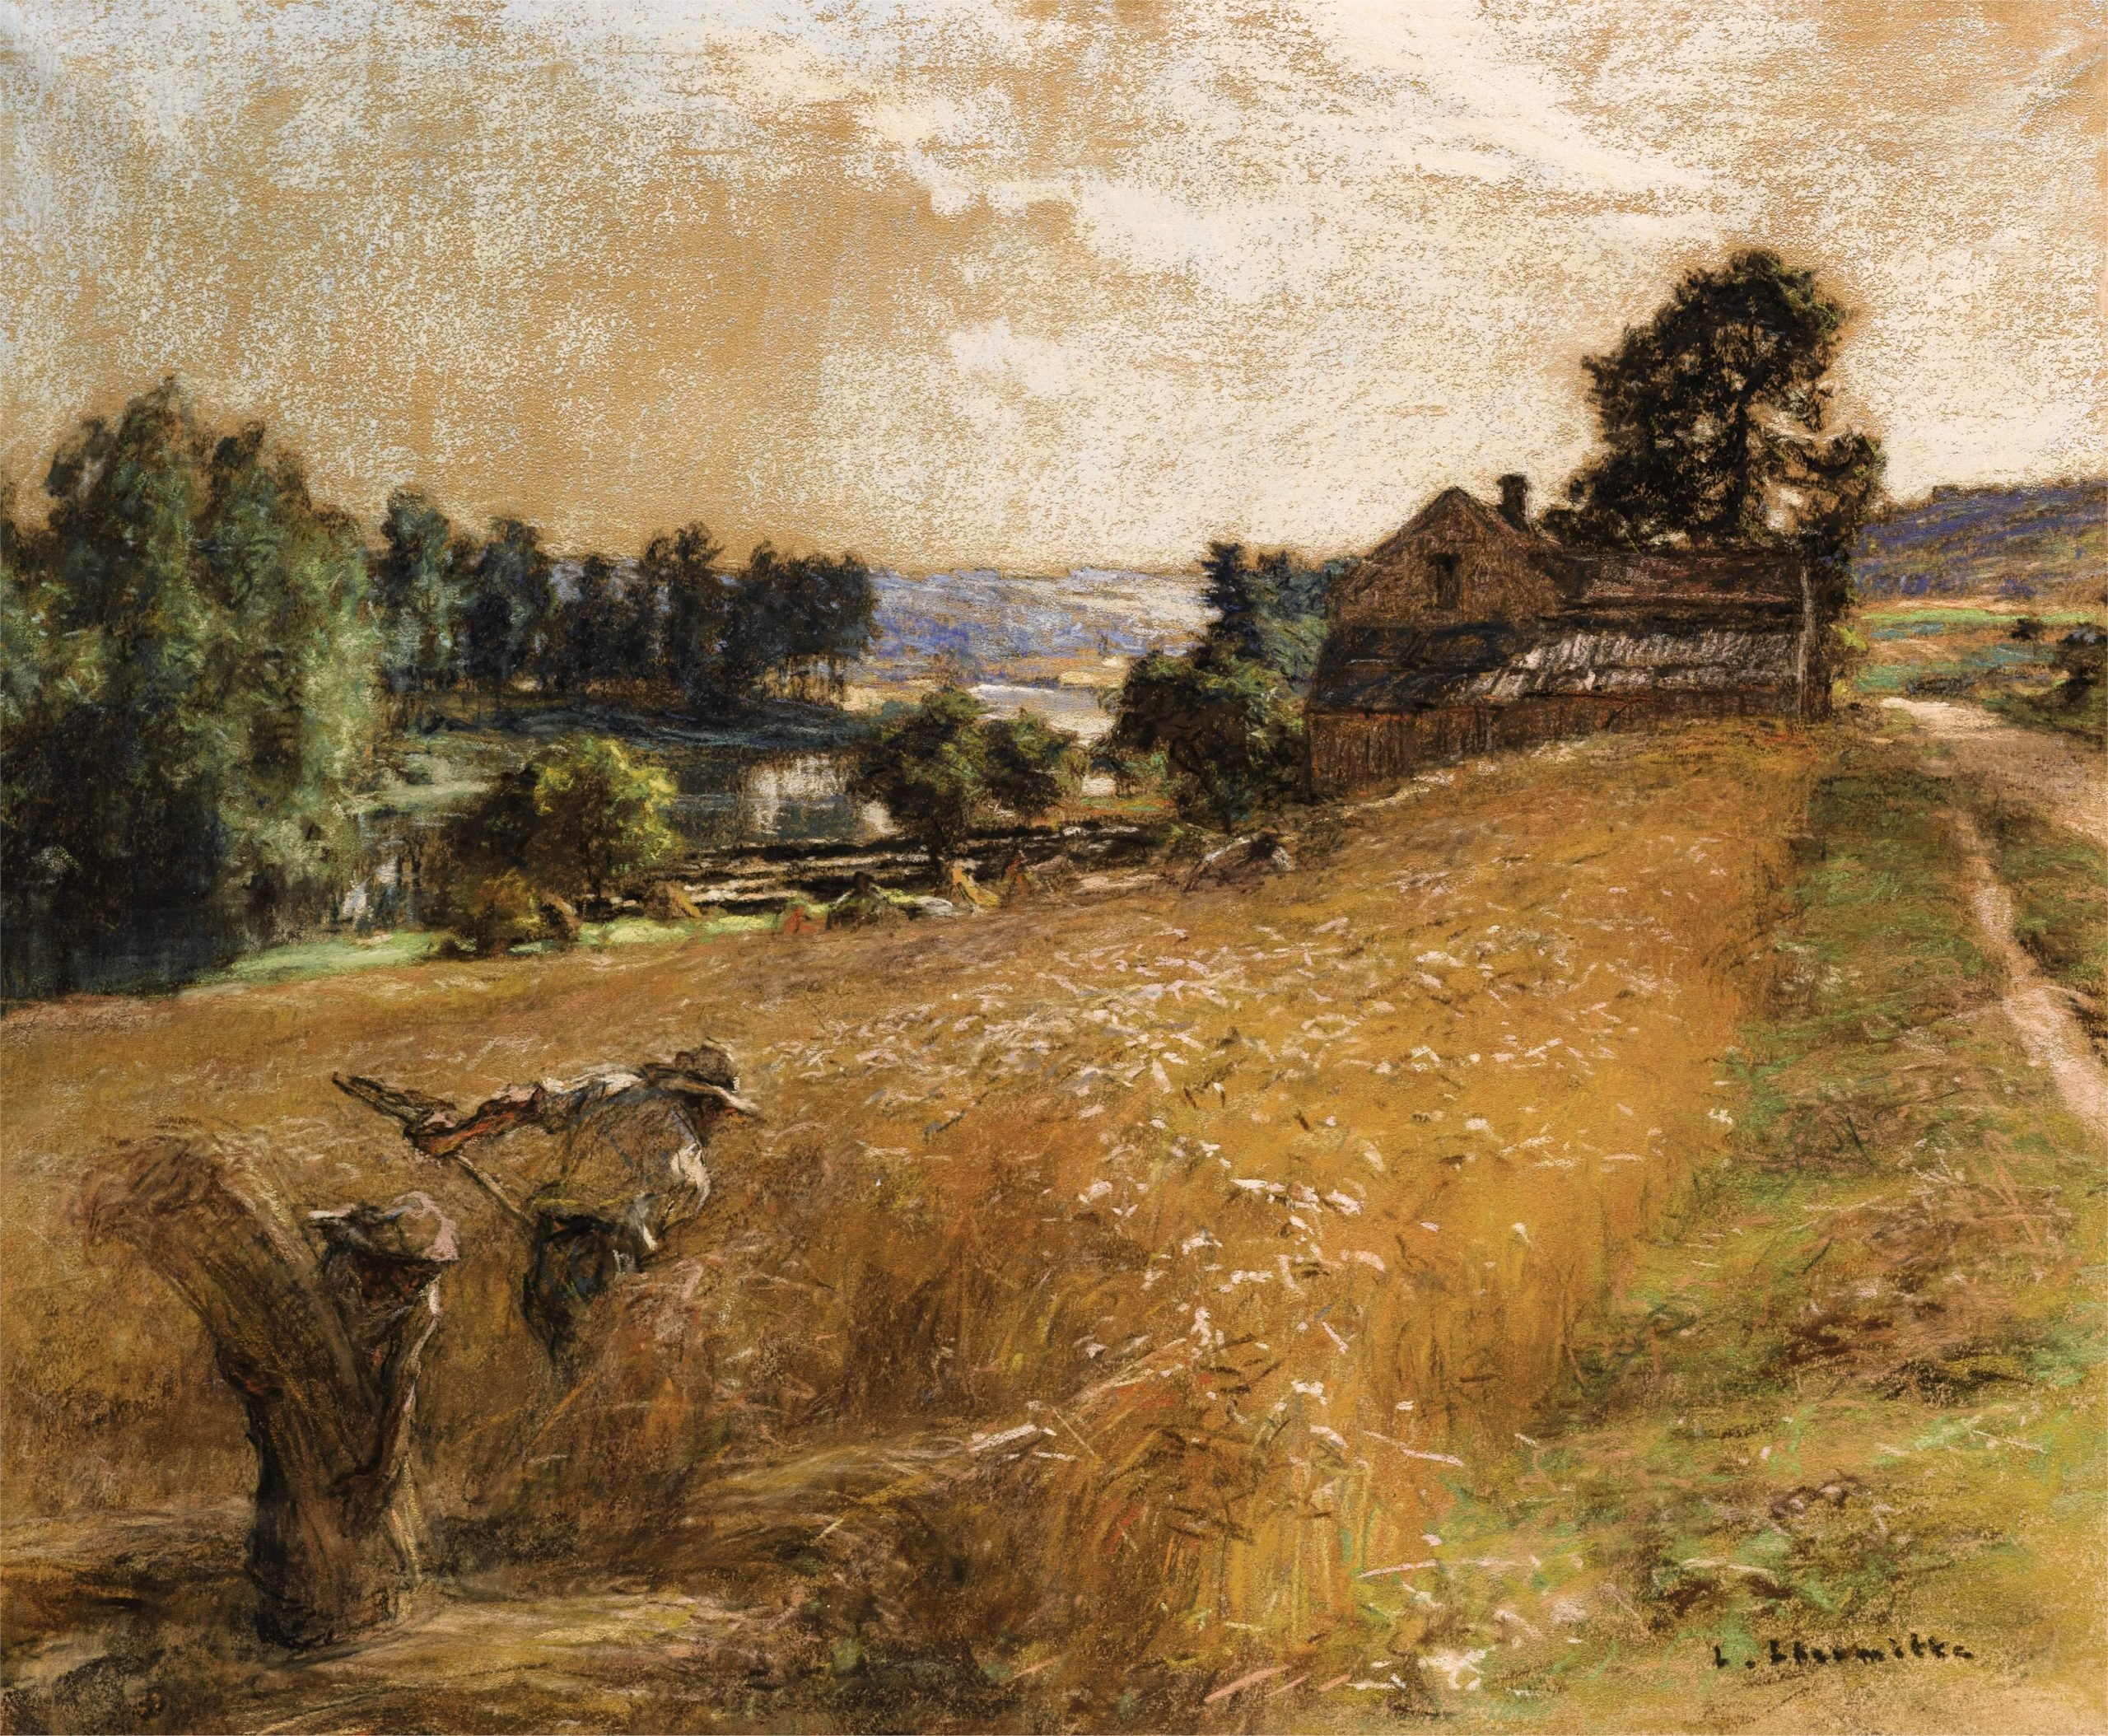 Farmers harvesting a corn field by hand near to a small house and a rough track